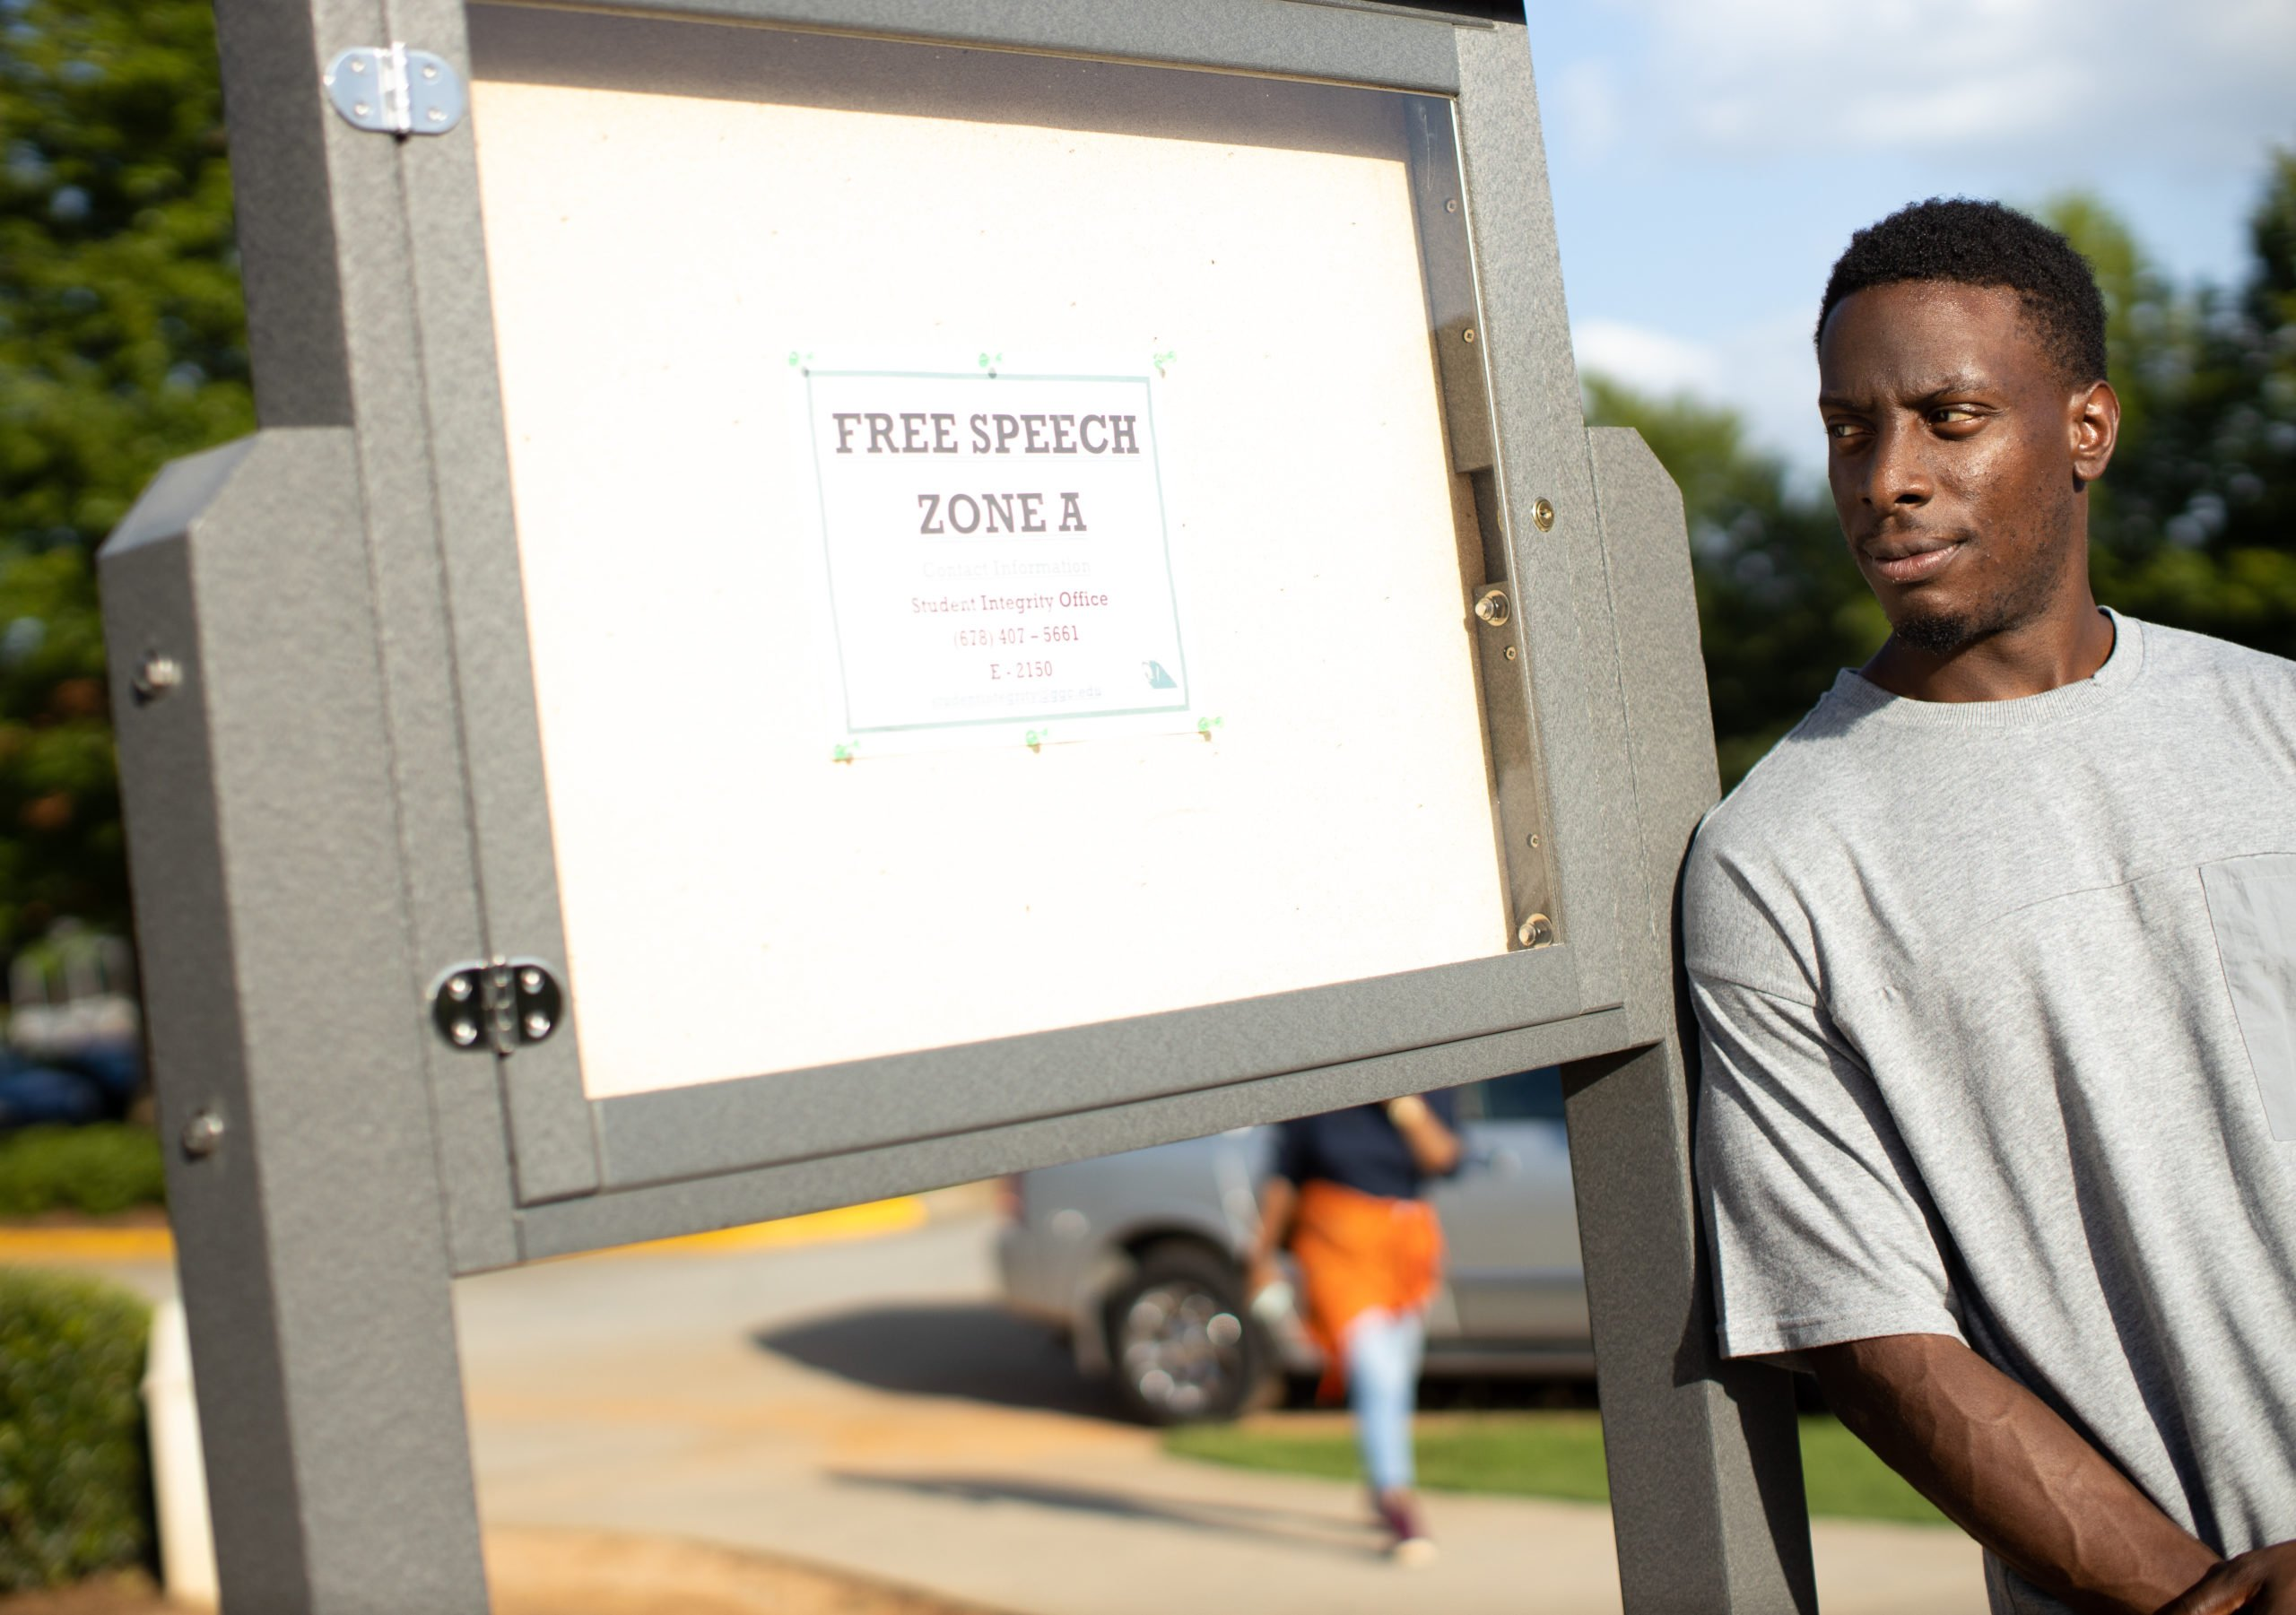 Chike Uzuegbunam stands next to a speech zone sign on the campus of Georgia Gwinnett College in Lawrenceville, Georgia. (Alliance Defending Freedom)